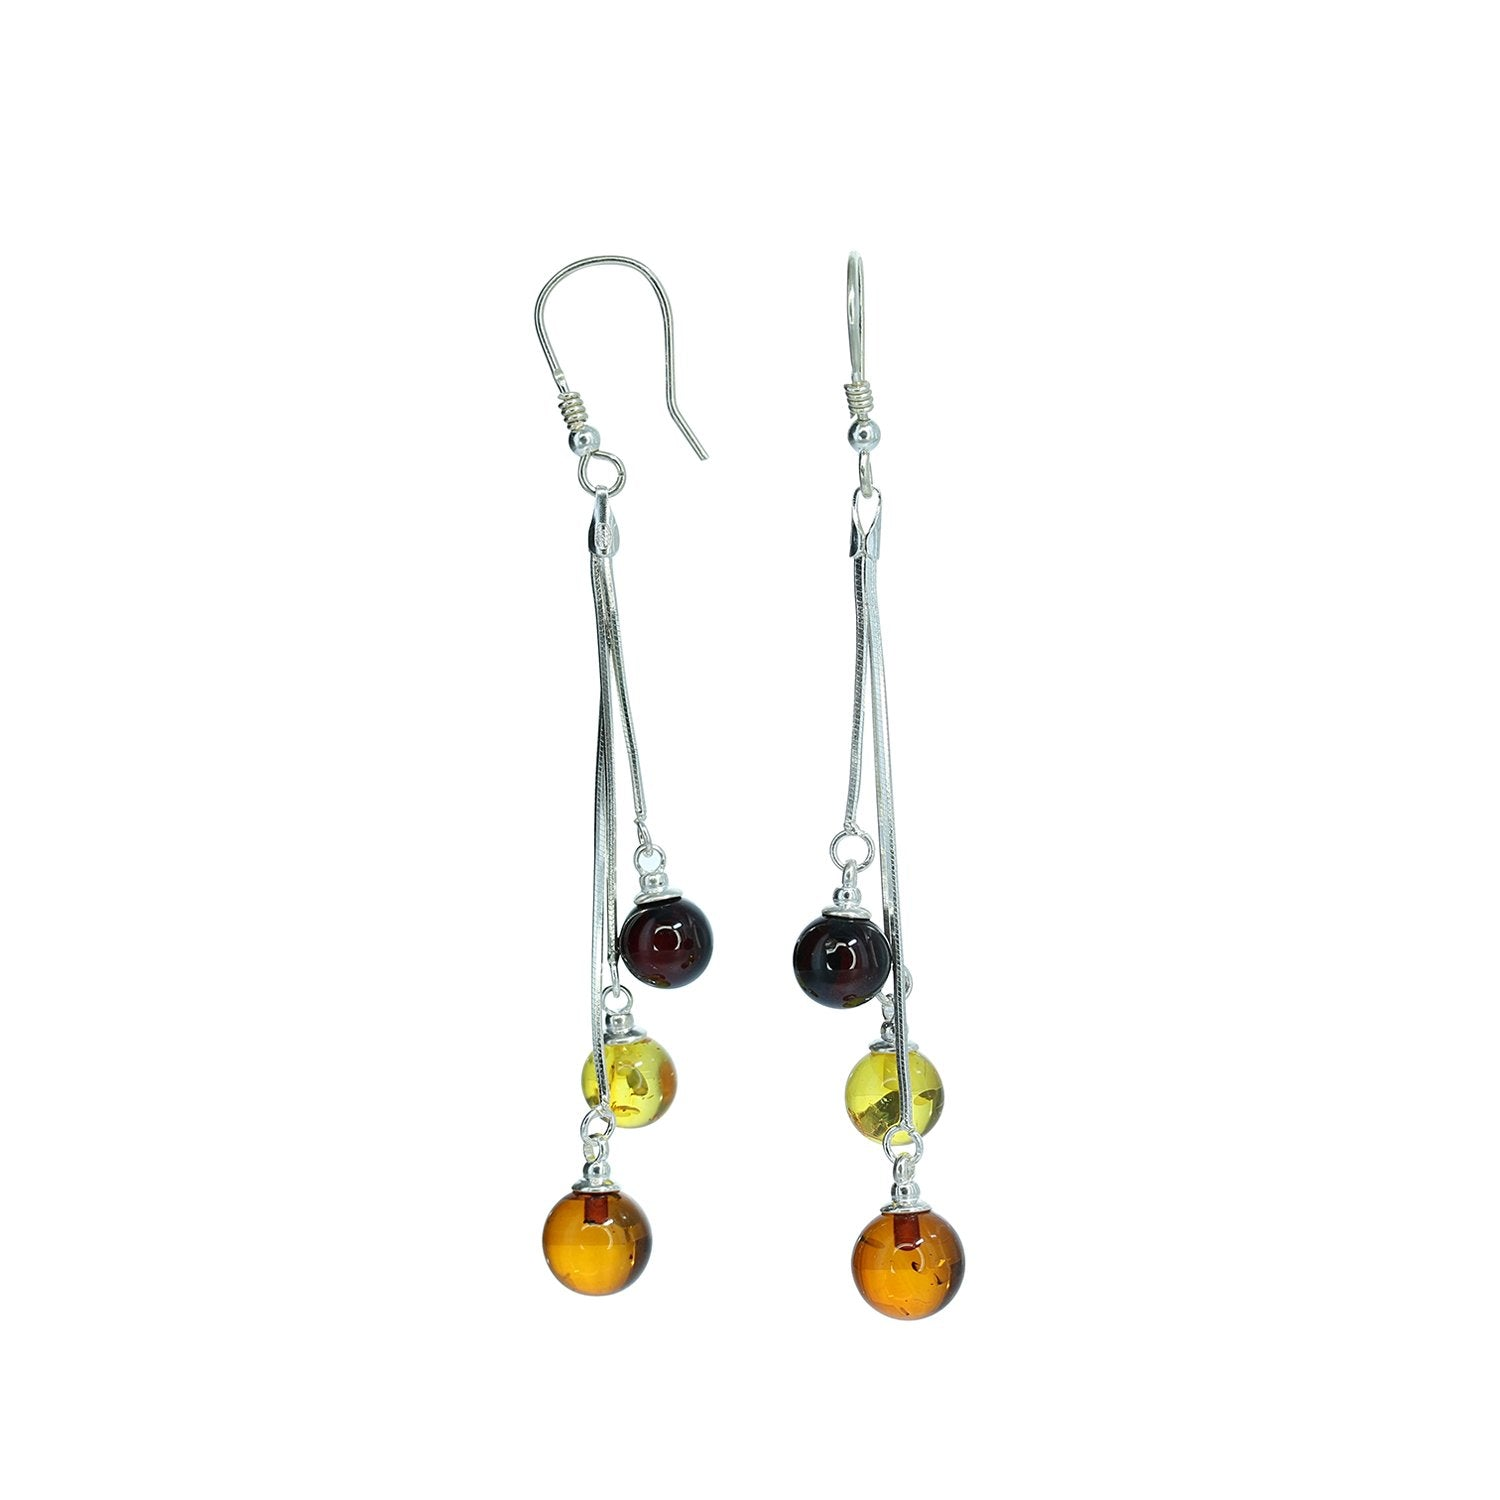 Amber Collection Earrings Three Ball Multi-Color Amber Hook Earrings in Sterling Silver